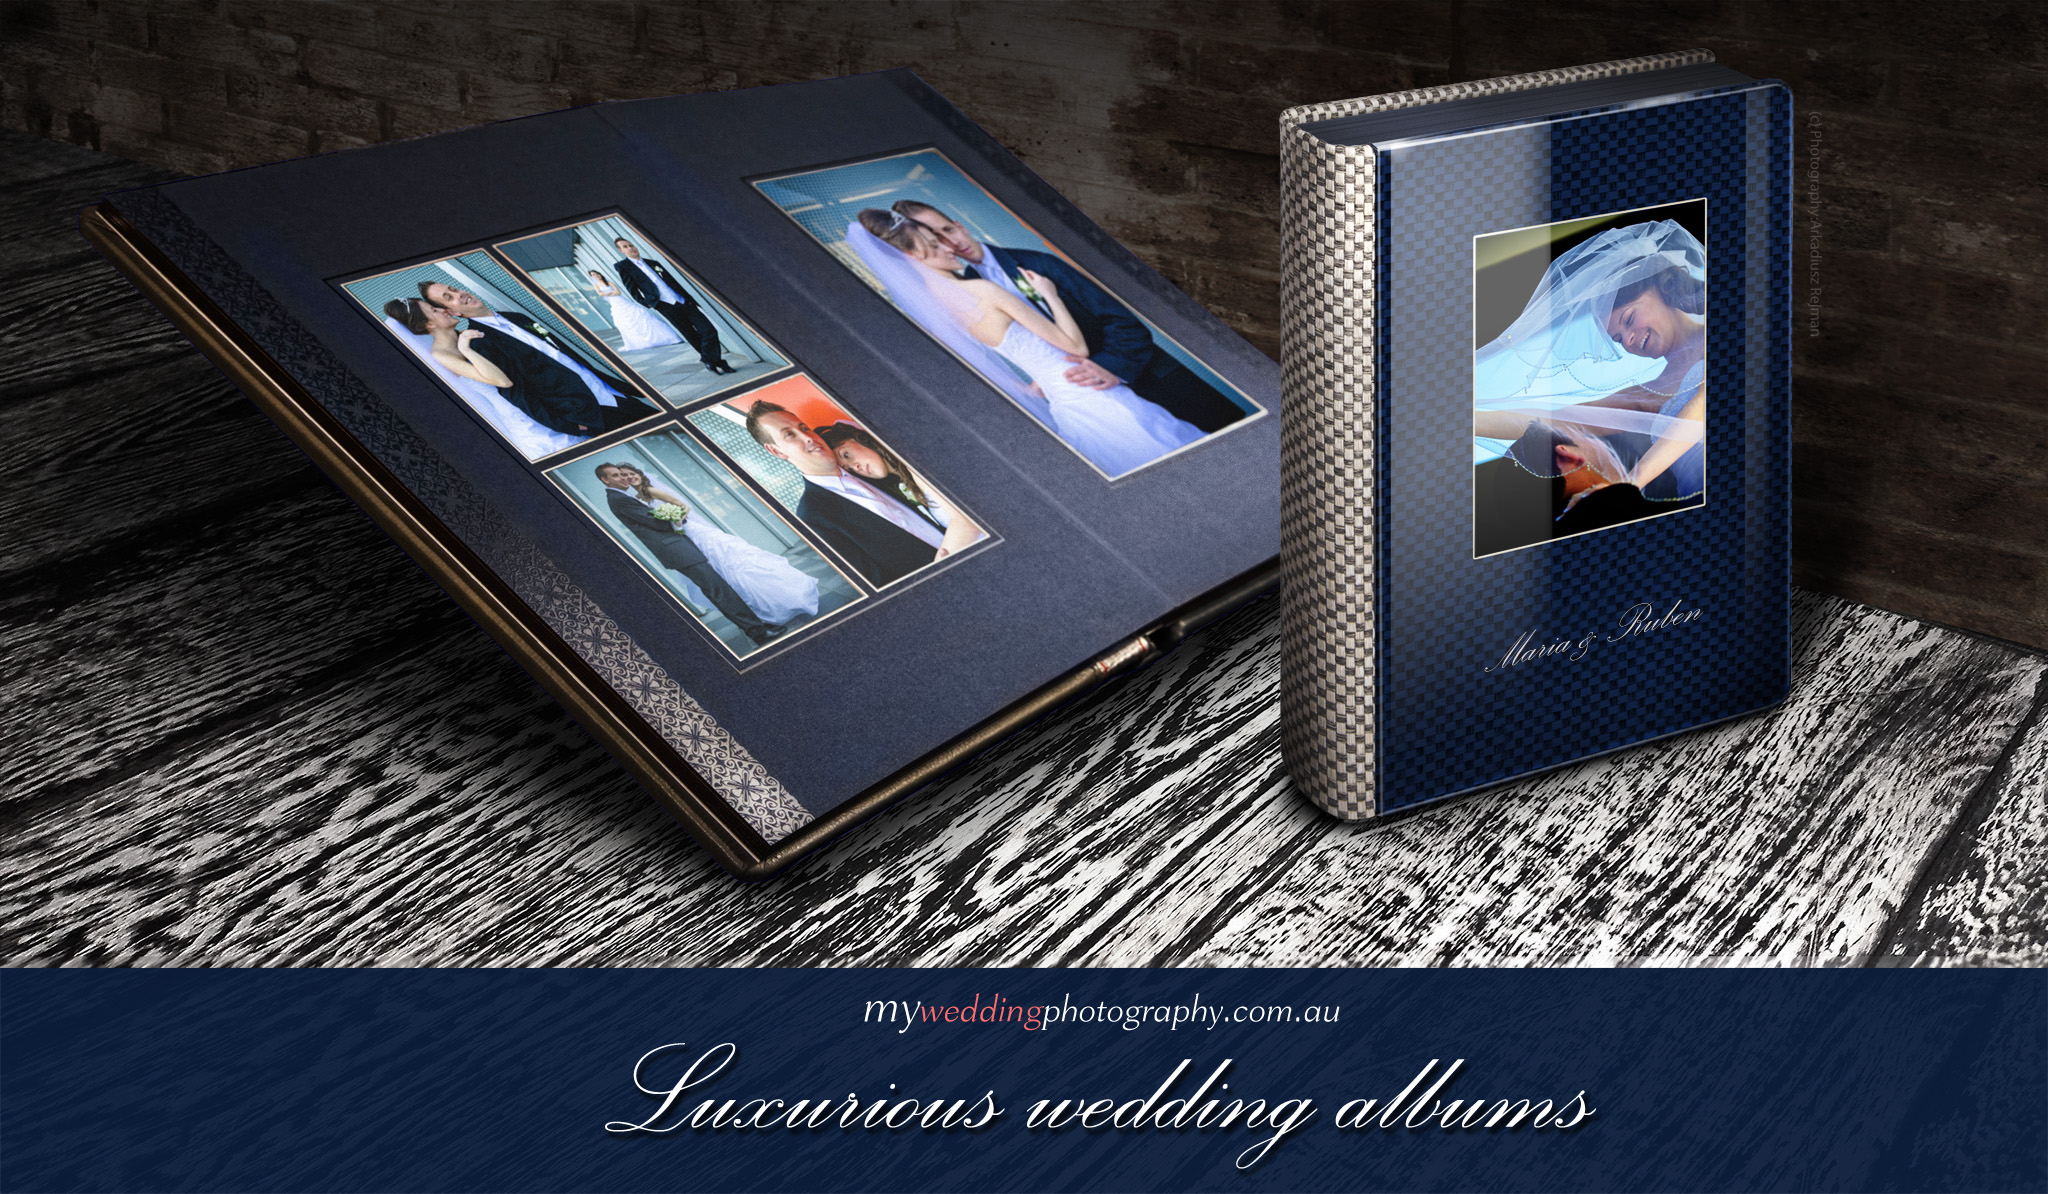 new luxourious wedding albums range wedding photography. Black Bedroom Furniture Sets. Home Design Ideas